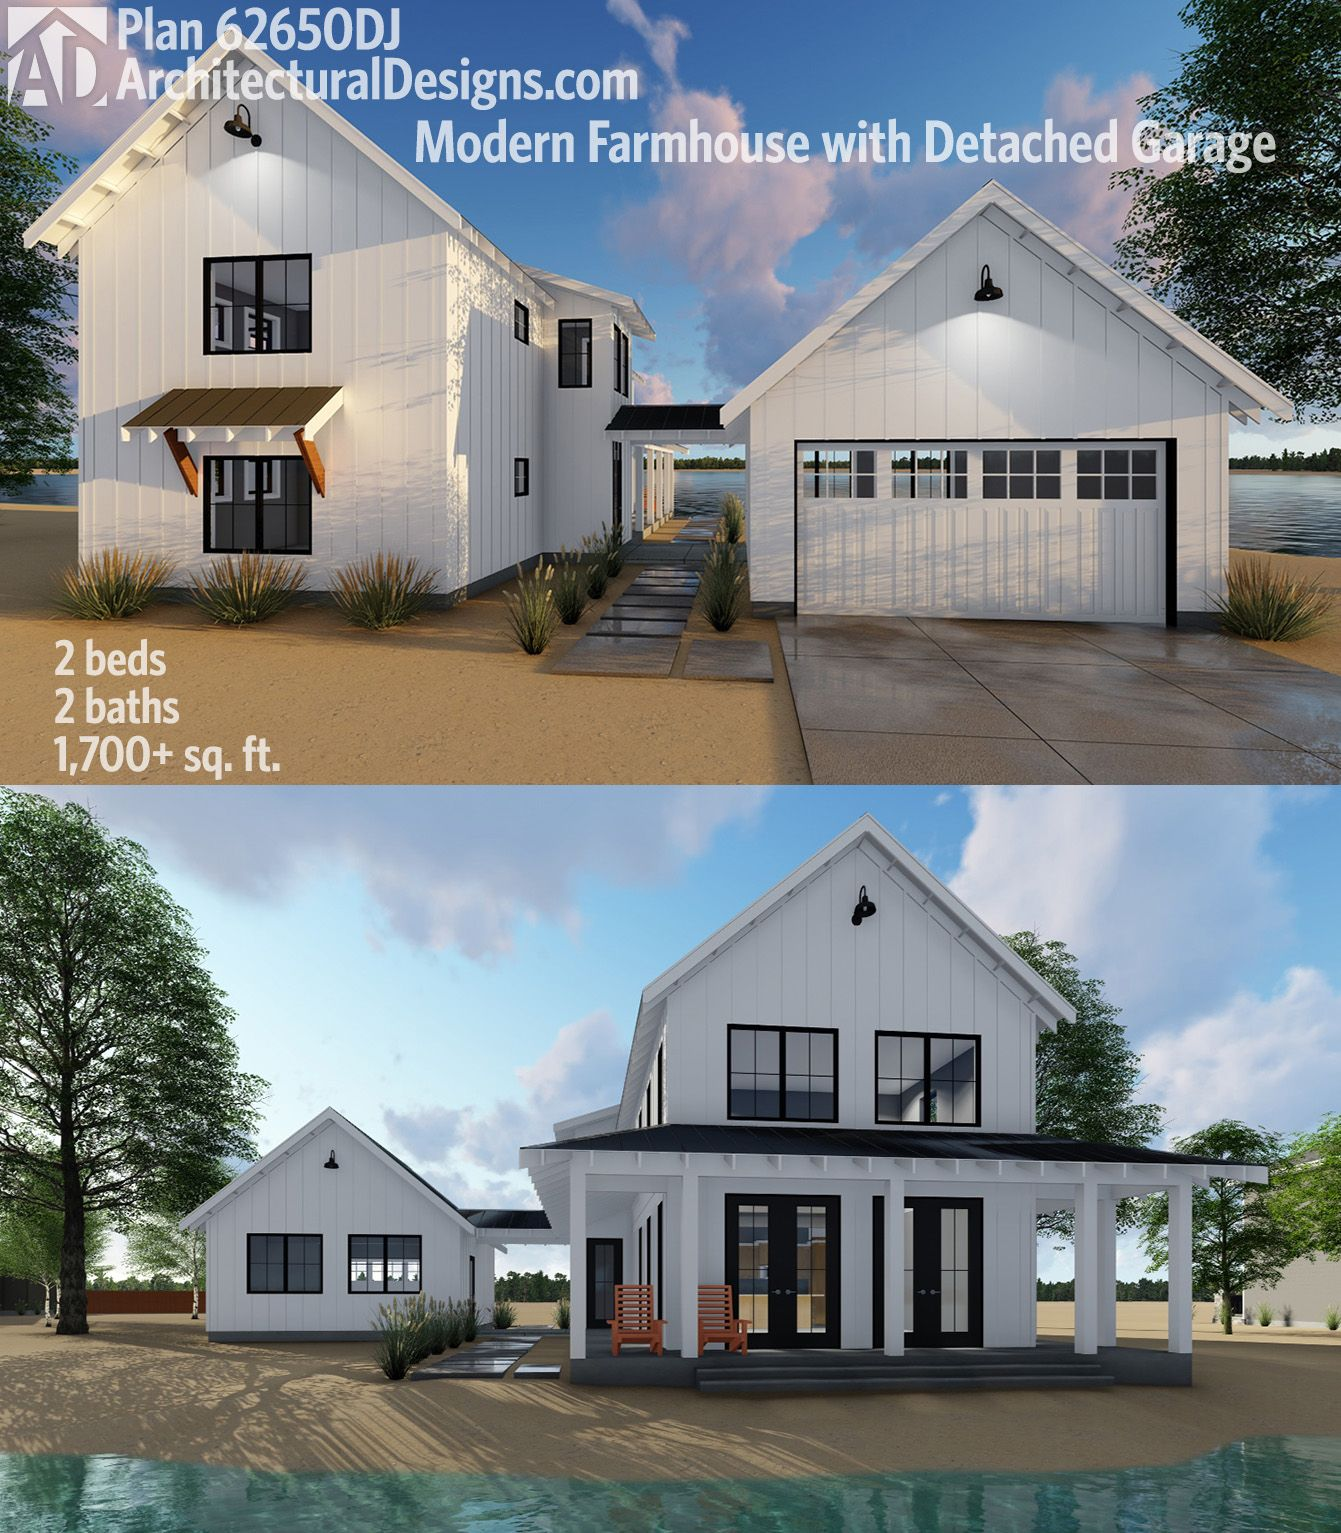 Plan 62650dj modern farmhouse plan with 2 beds and semi for Sq ft of 2 car garage